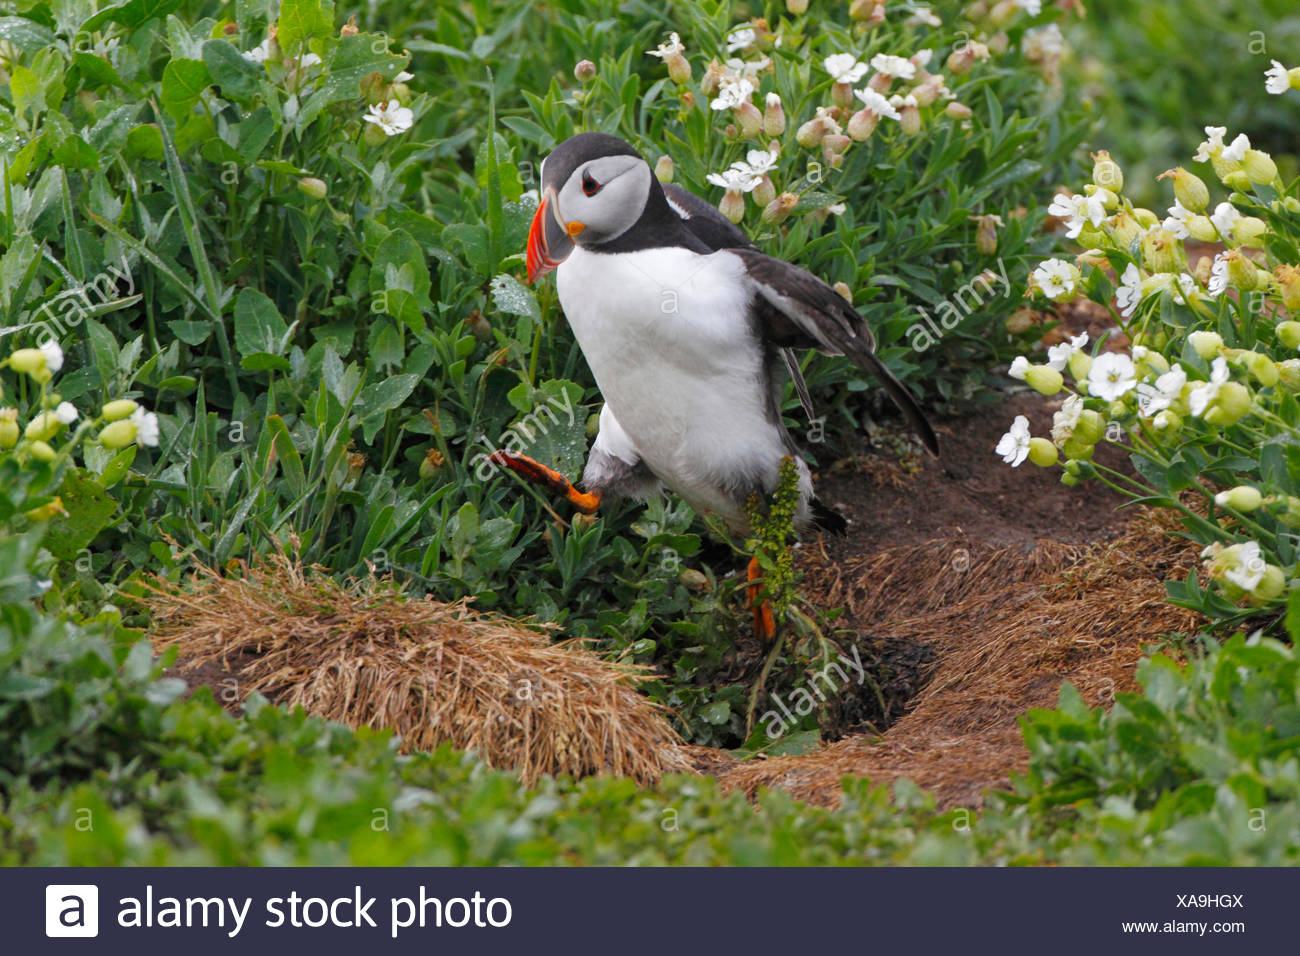 Atlantic puffin, Common puffin (Fratercula arctica), hopping over a hassock, United Kingdom, England, Farne Islands, Staple Island - Stock Image